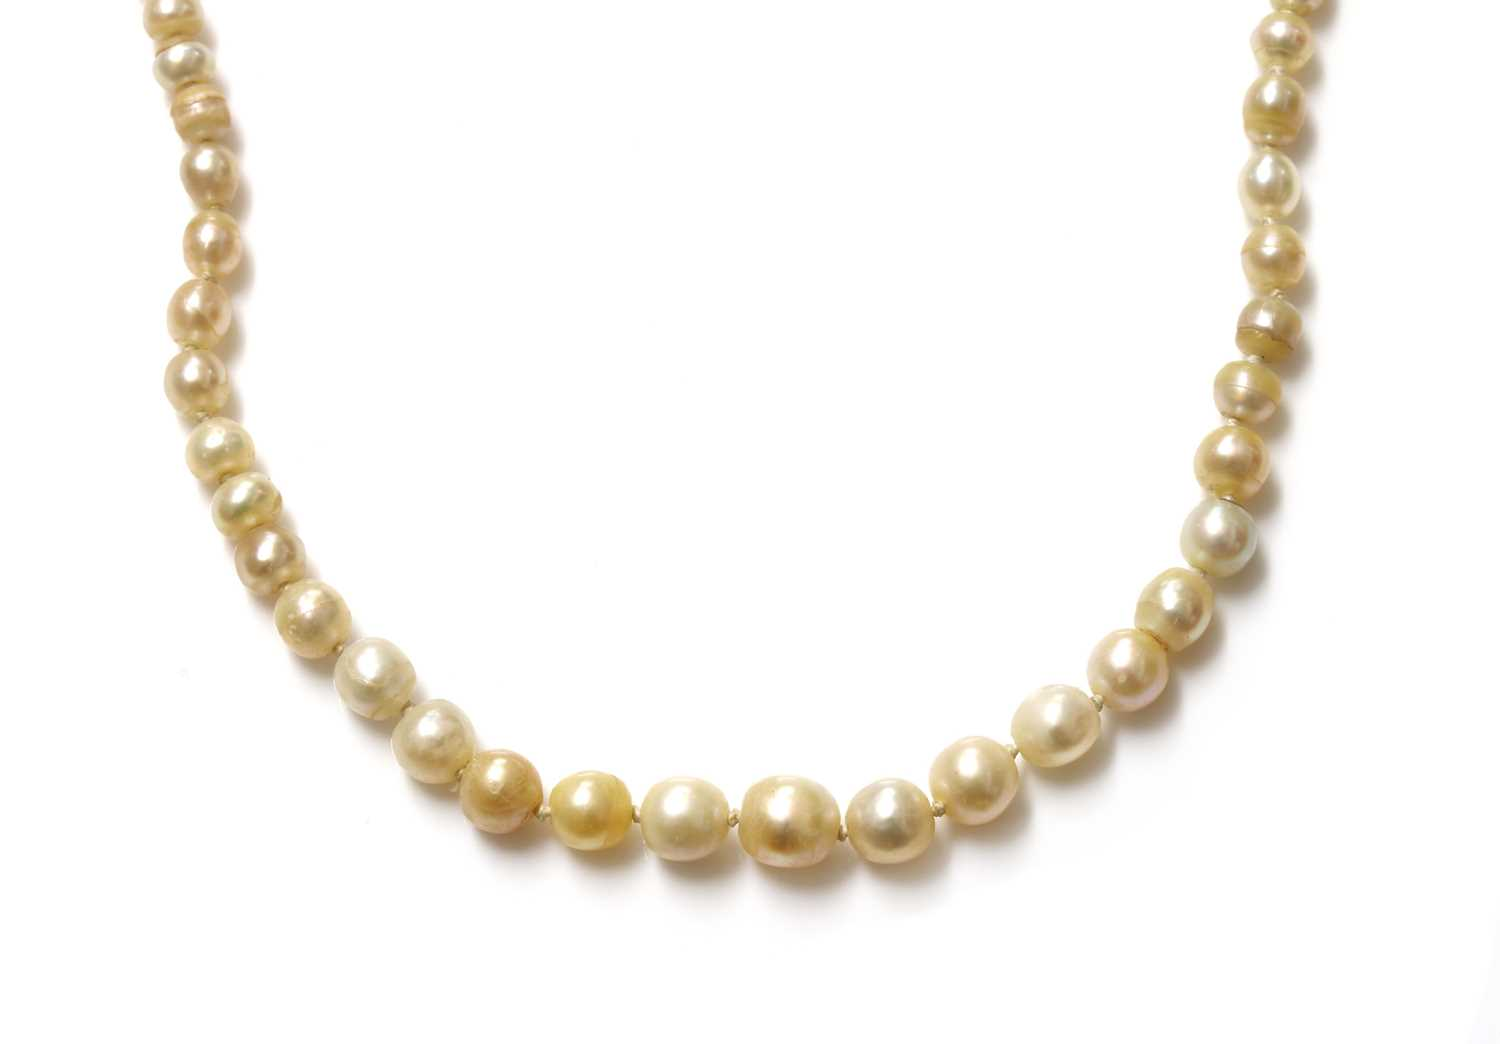 A single row graduated pearl necklace, - Image 3 of 7